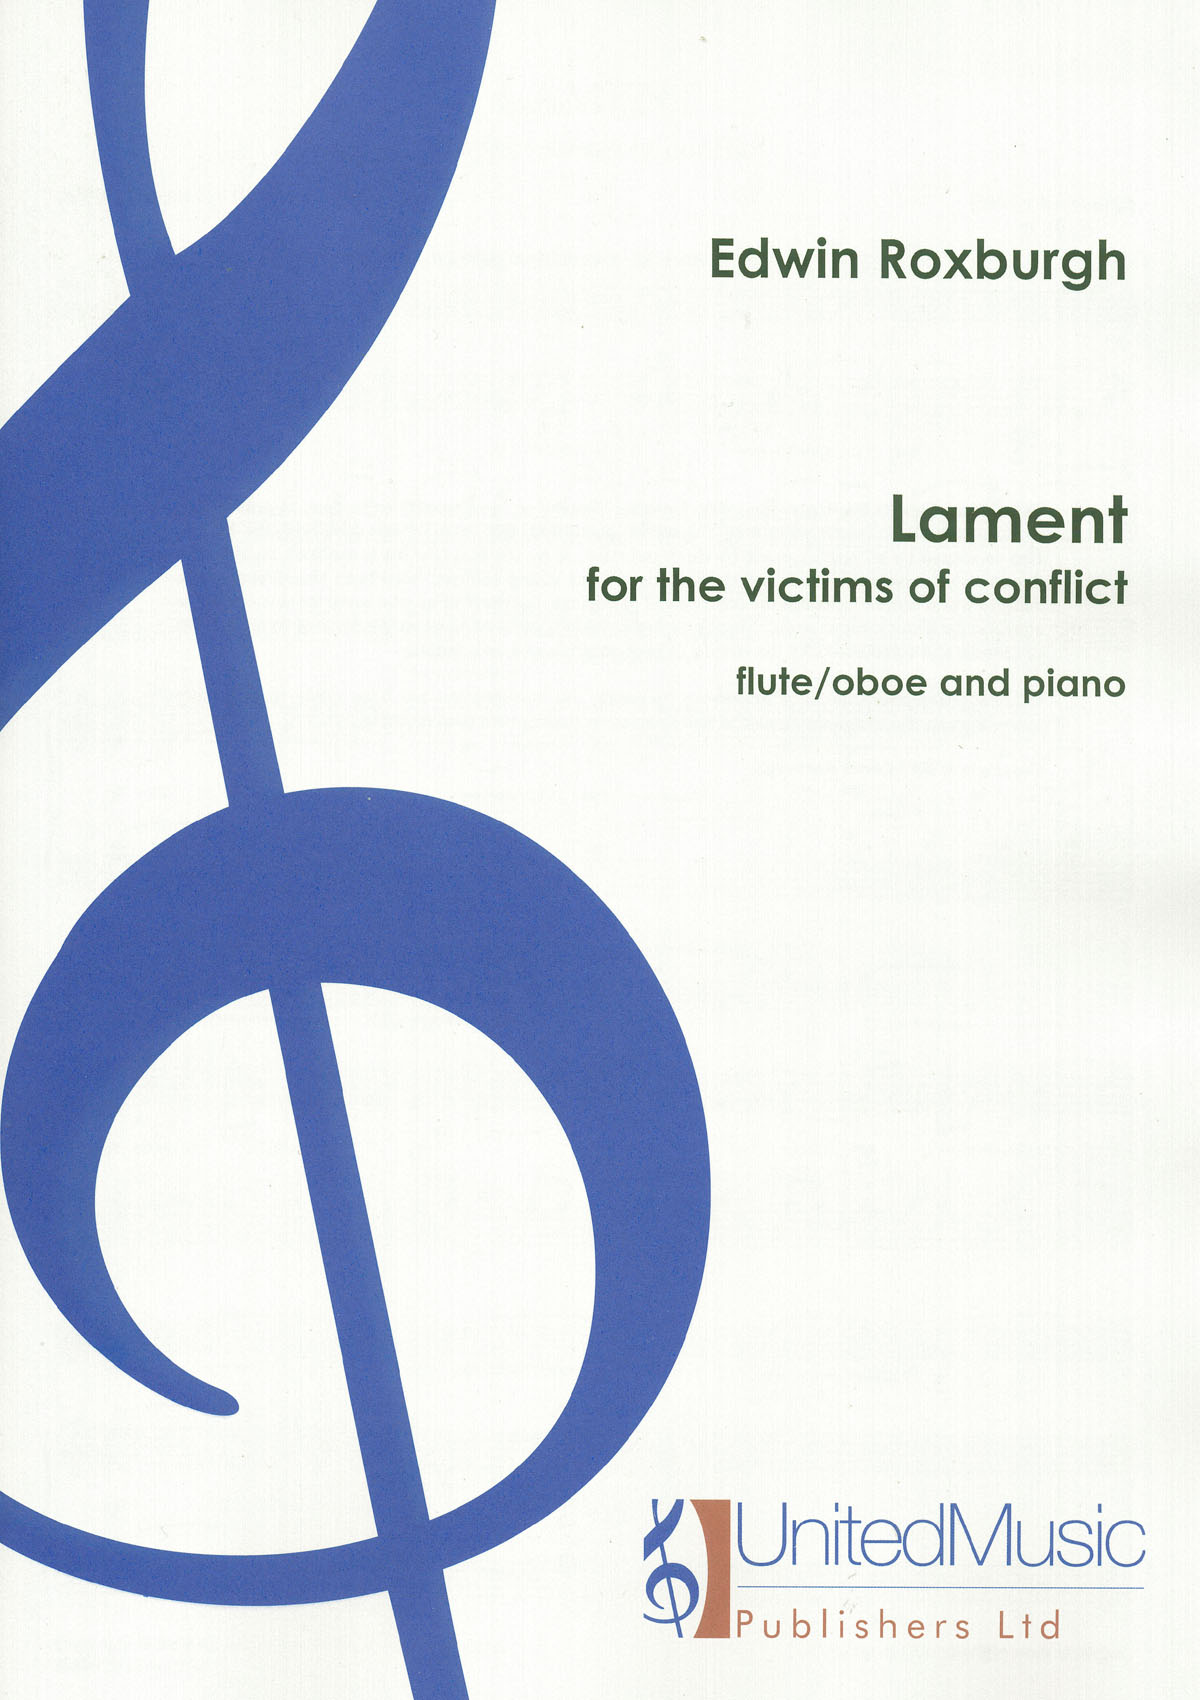 LAMENT FOR THE VICTIMS OF CONFLICT